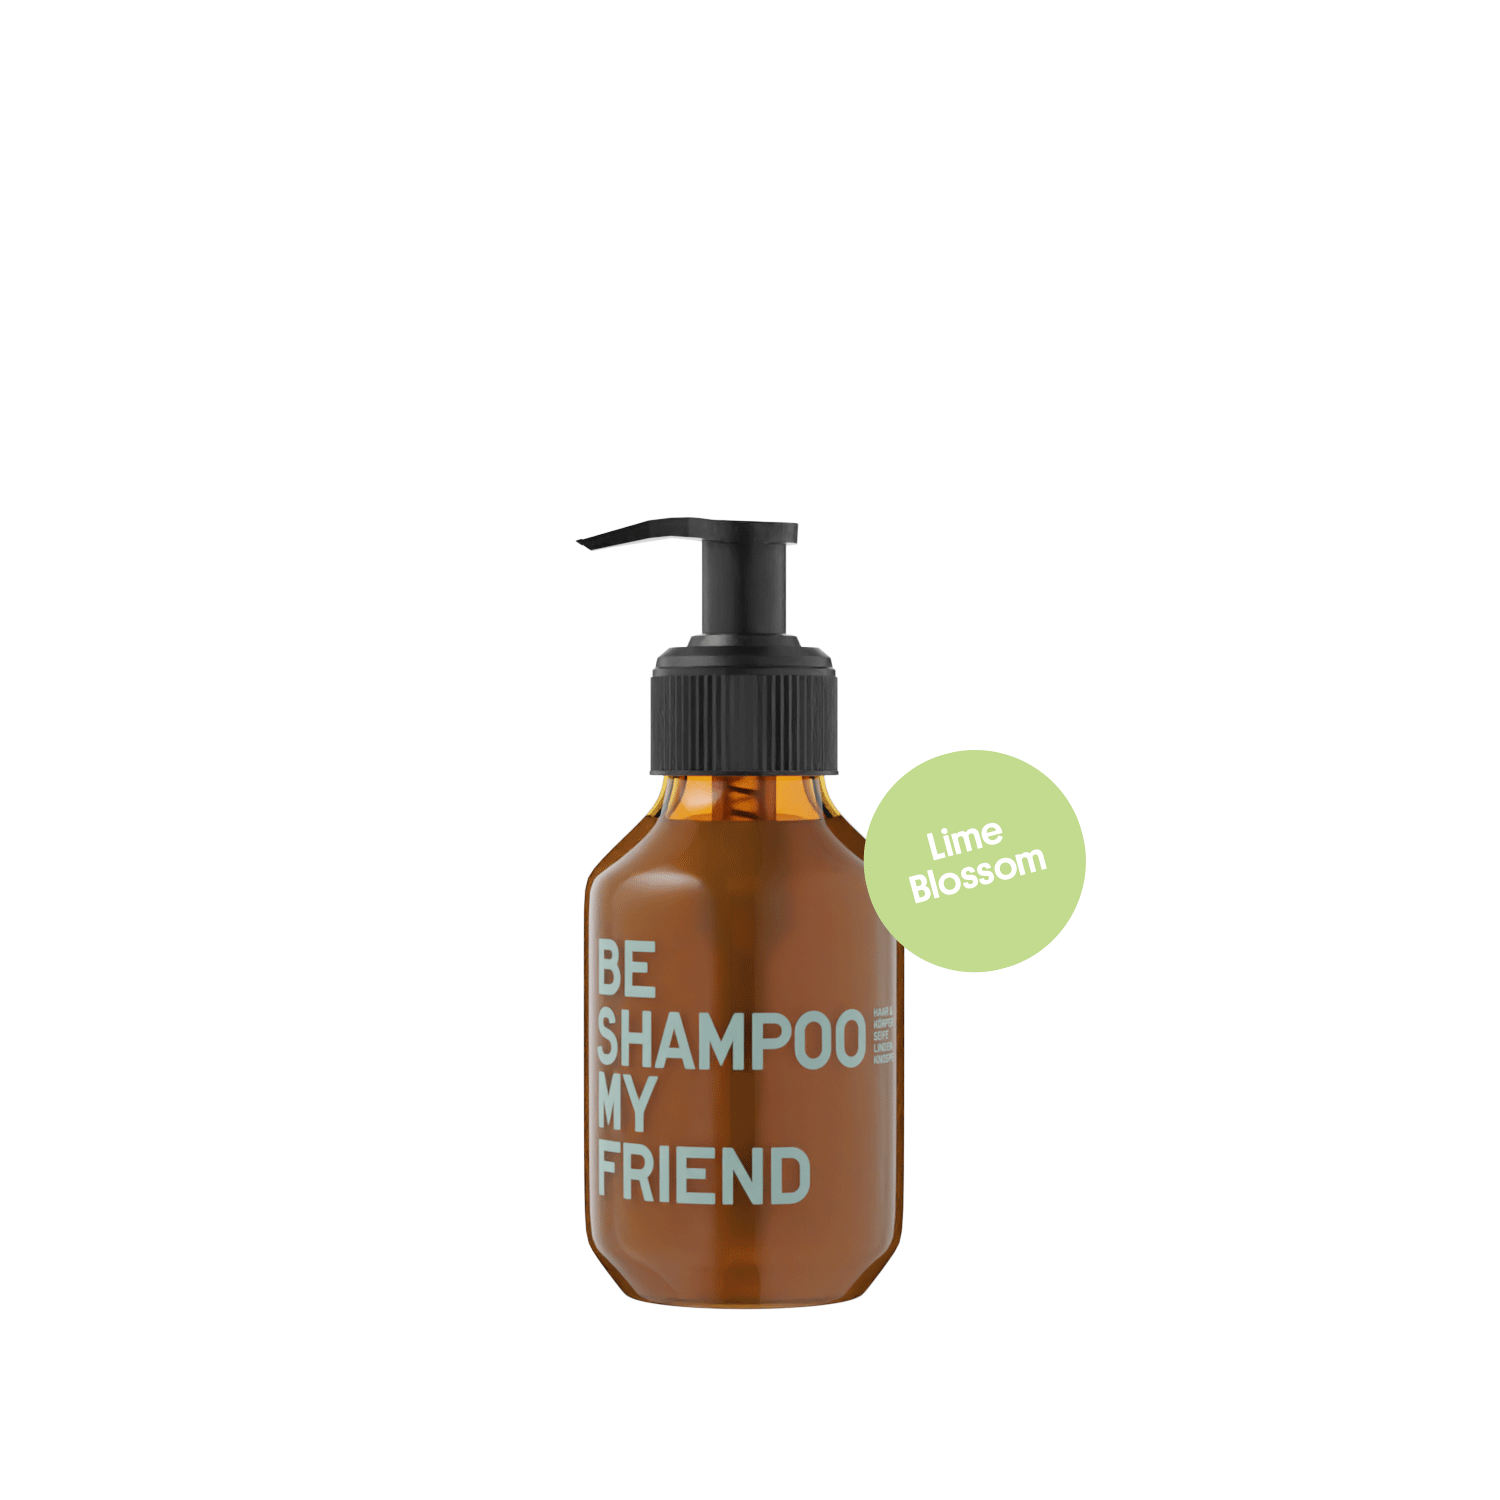 Shampoo – Lindenblüte 100 ml von BE [...] MY FRIEND